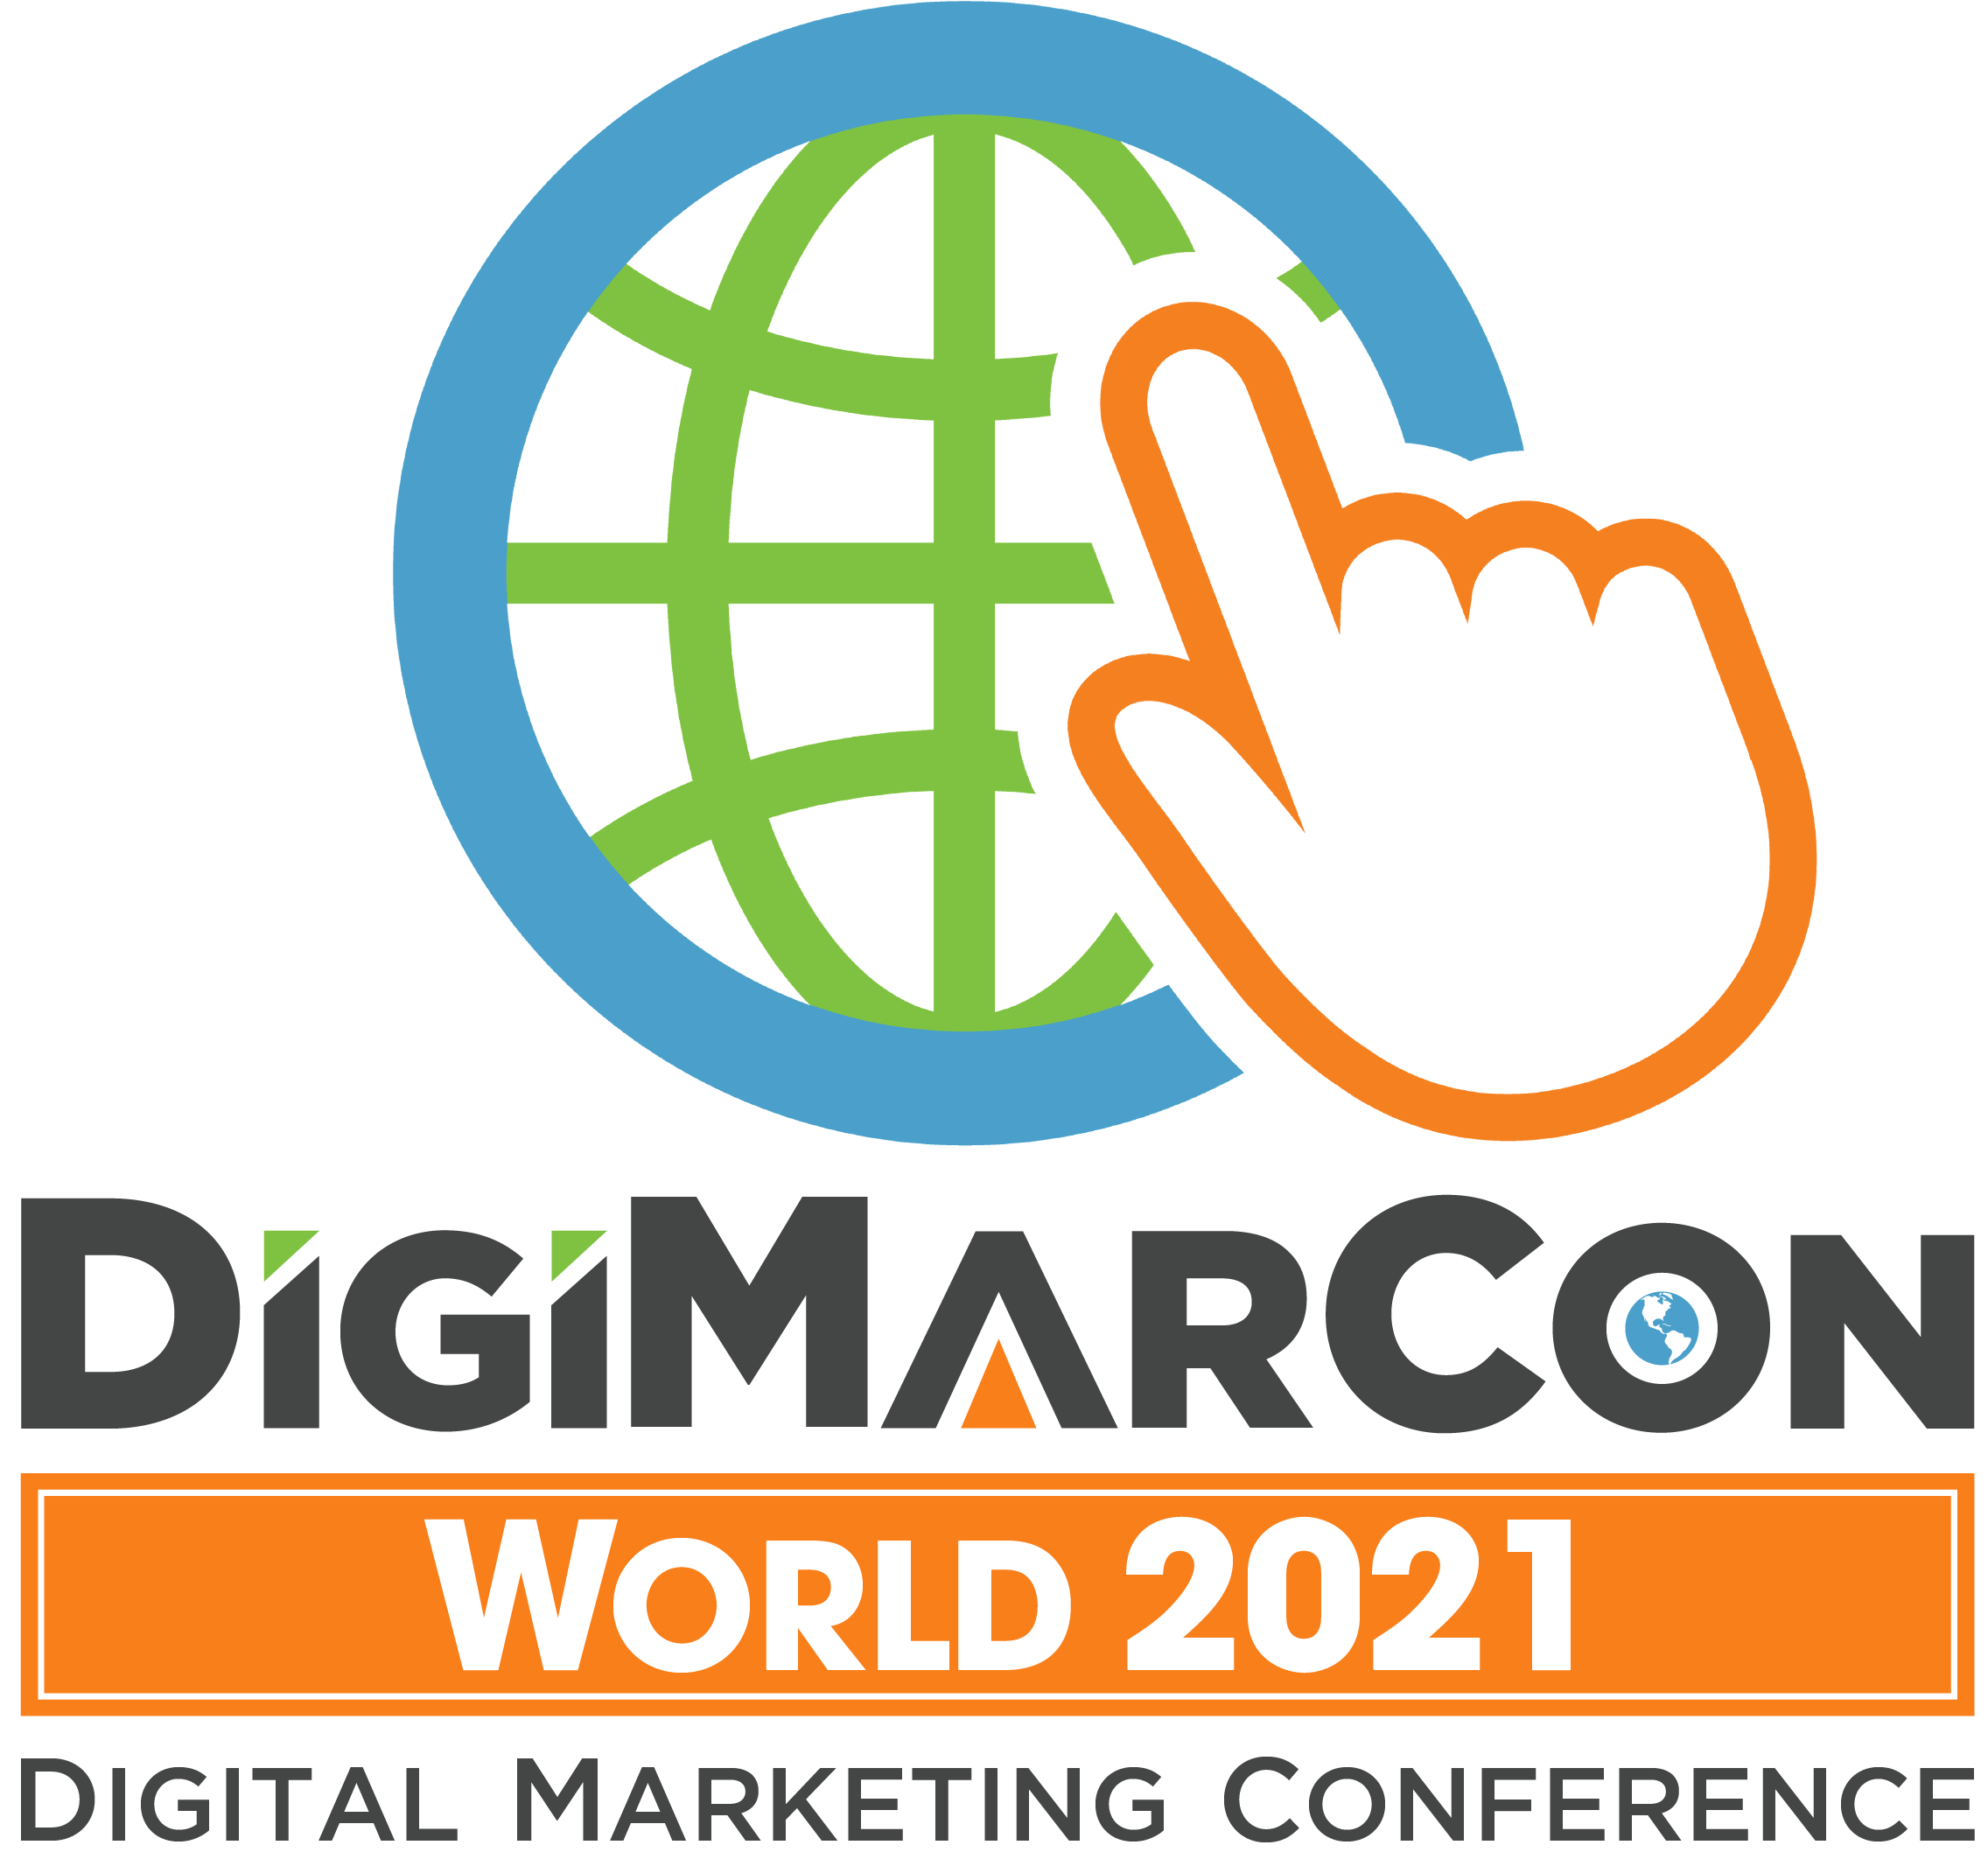 DigiMarCon World 2021 – Digital Marketing, Media and Advertising Conference